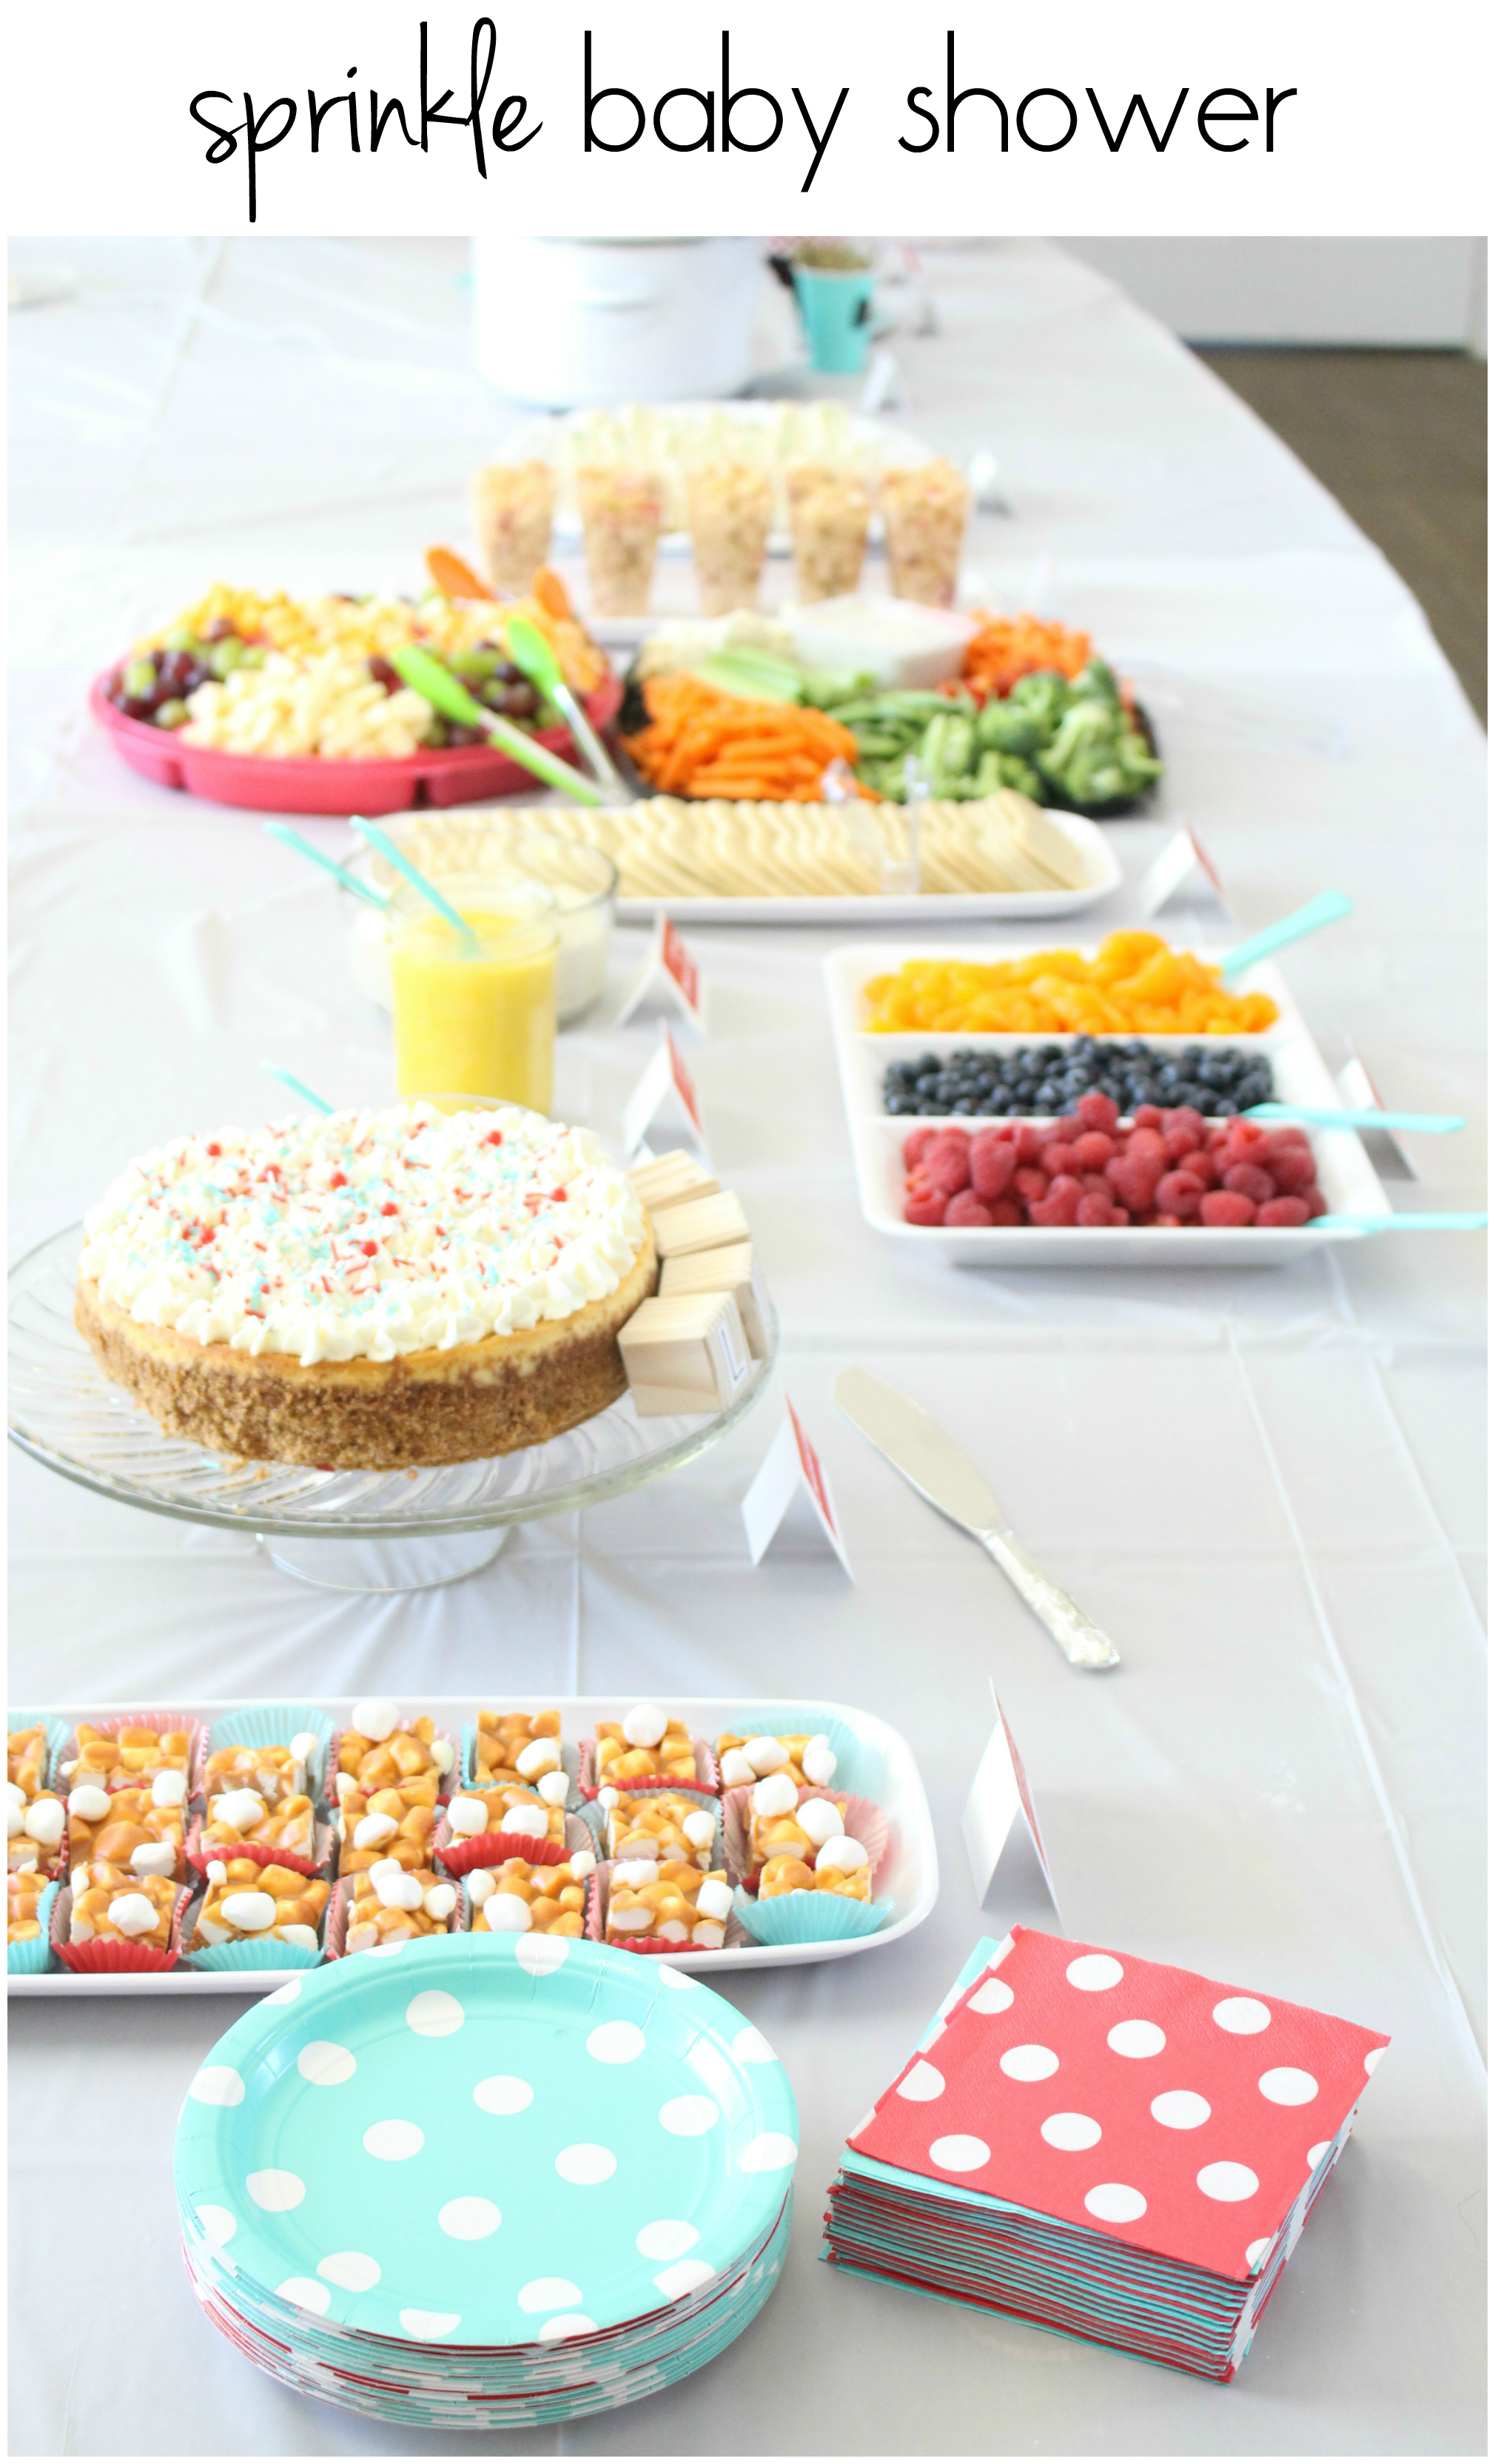 Sprinkle Baby Shower  The Ruby Kitchen